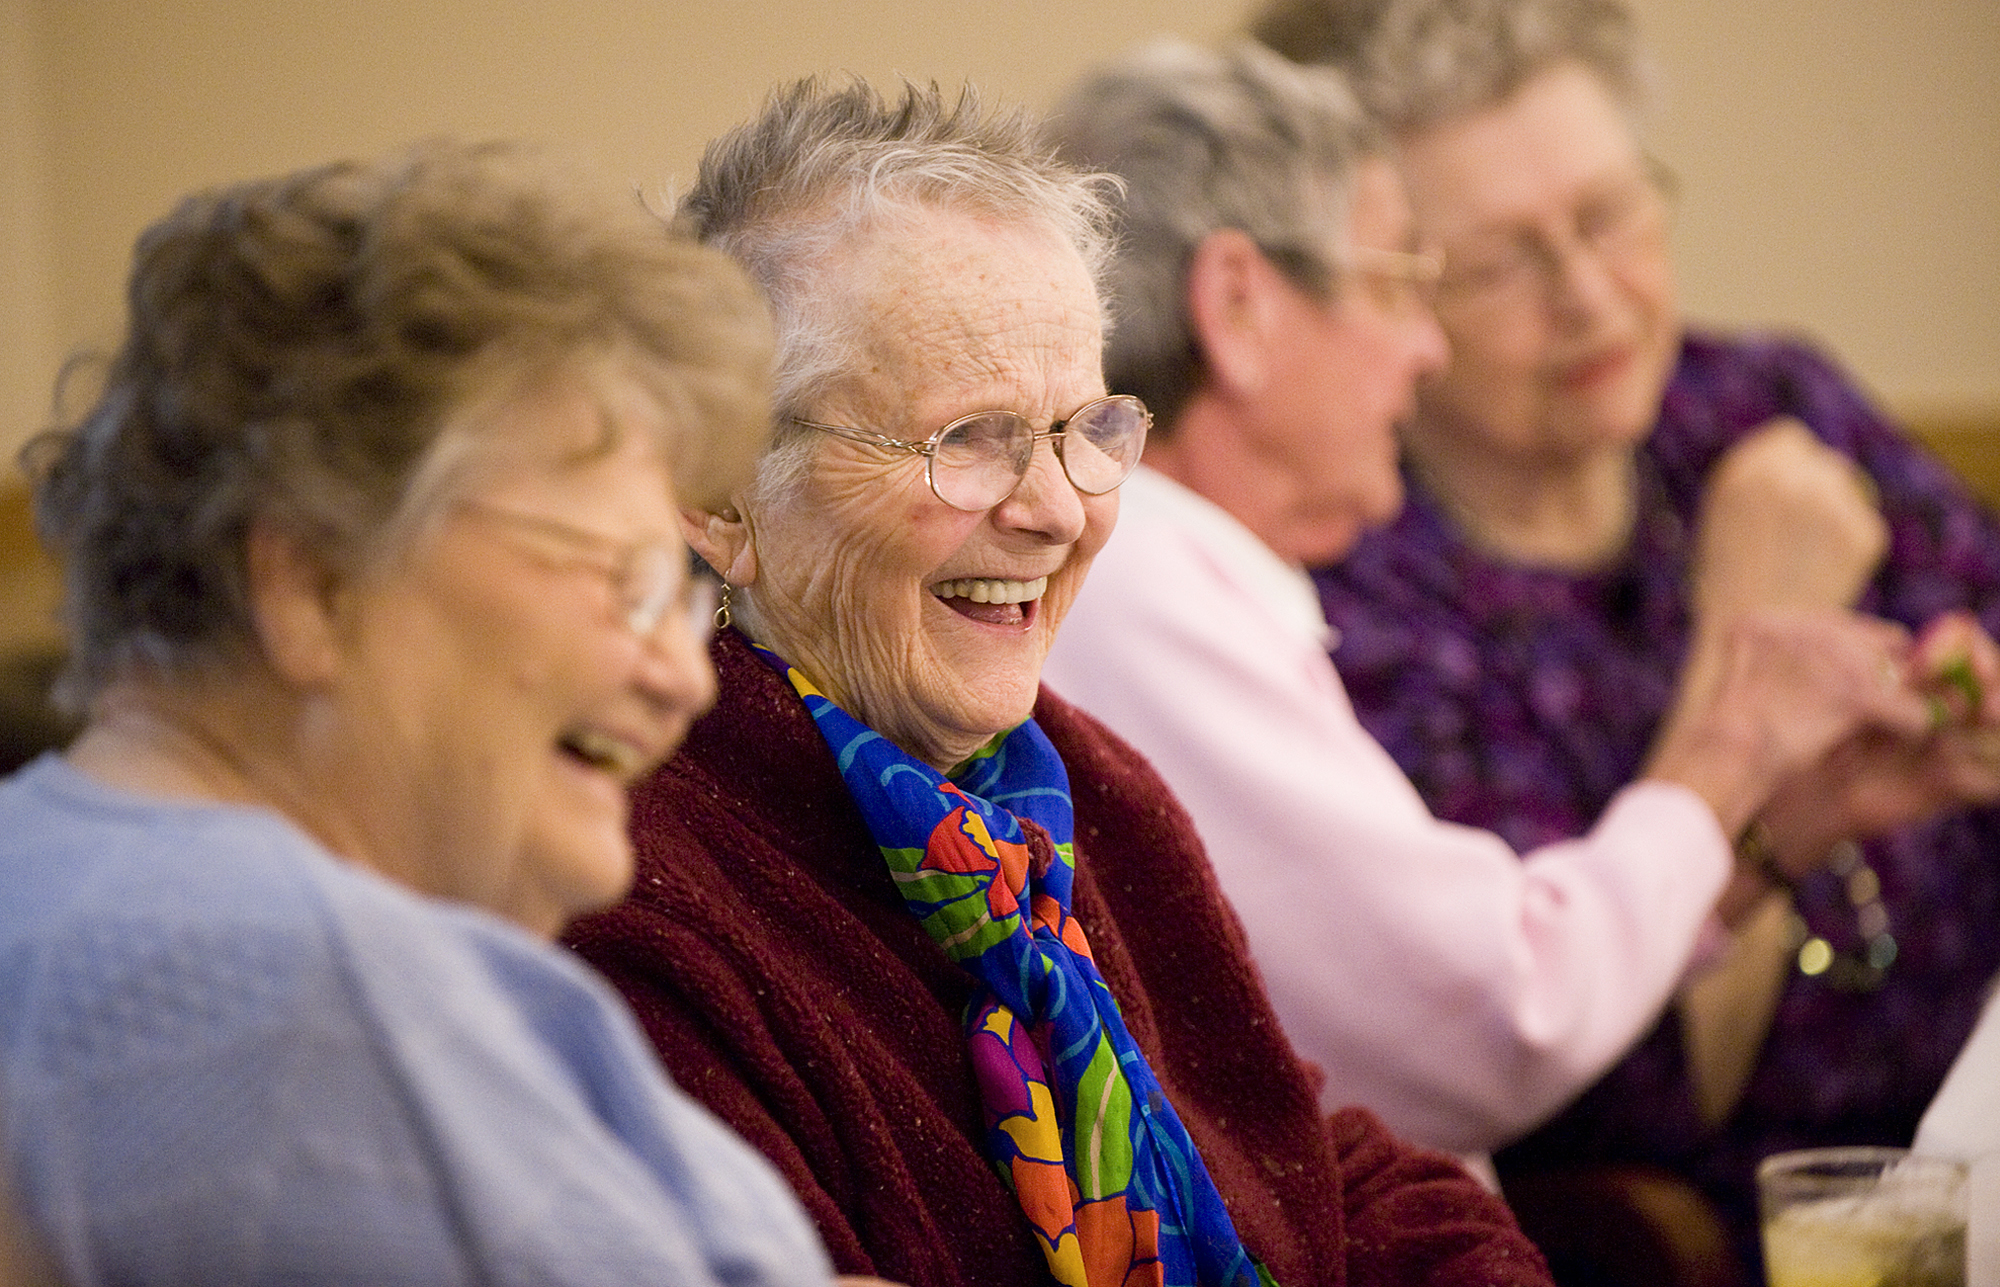 Our knowledge of Campus Types for senior living minimize the disruption residents experience.